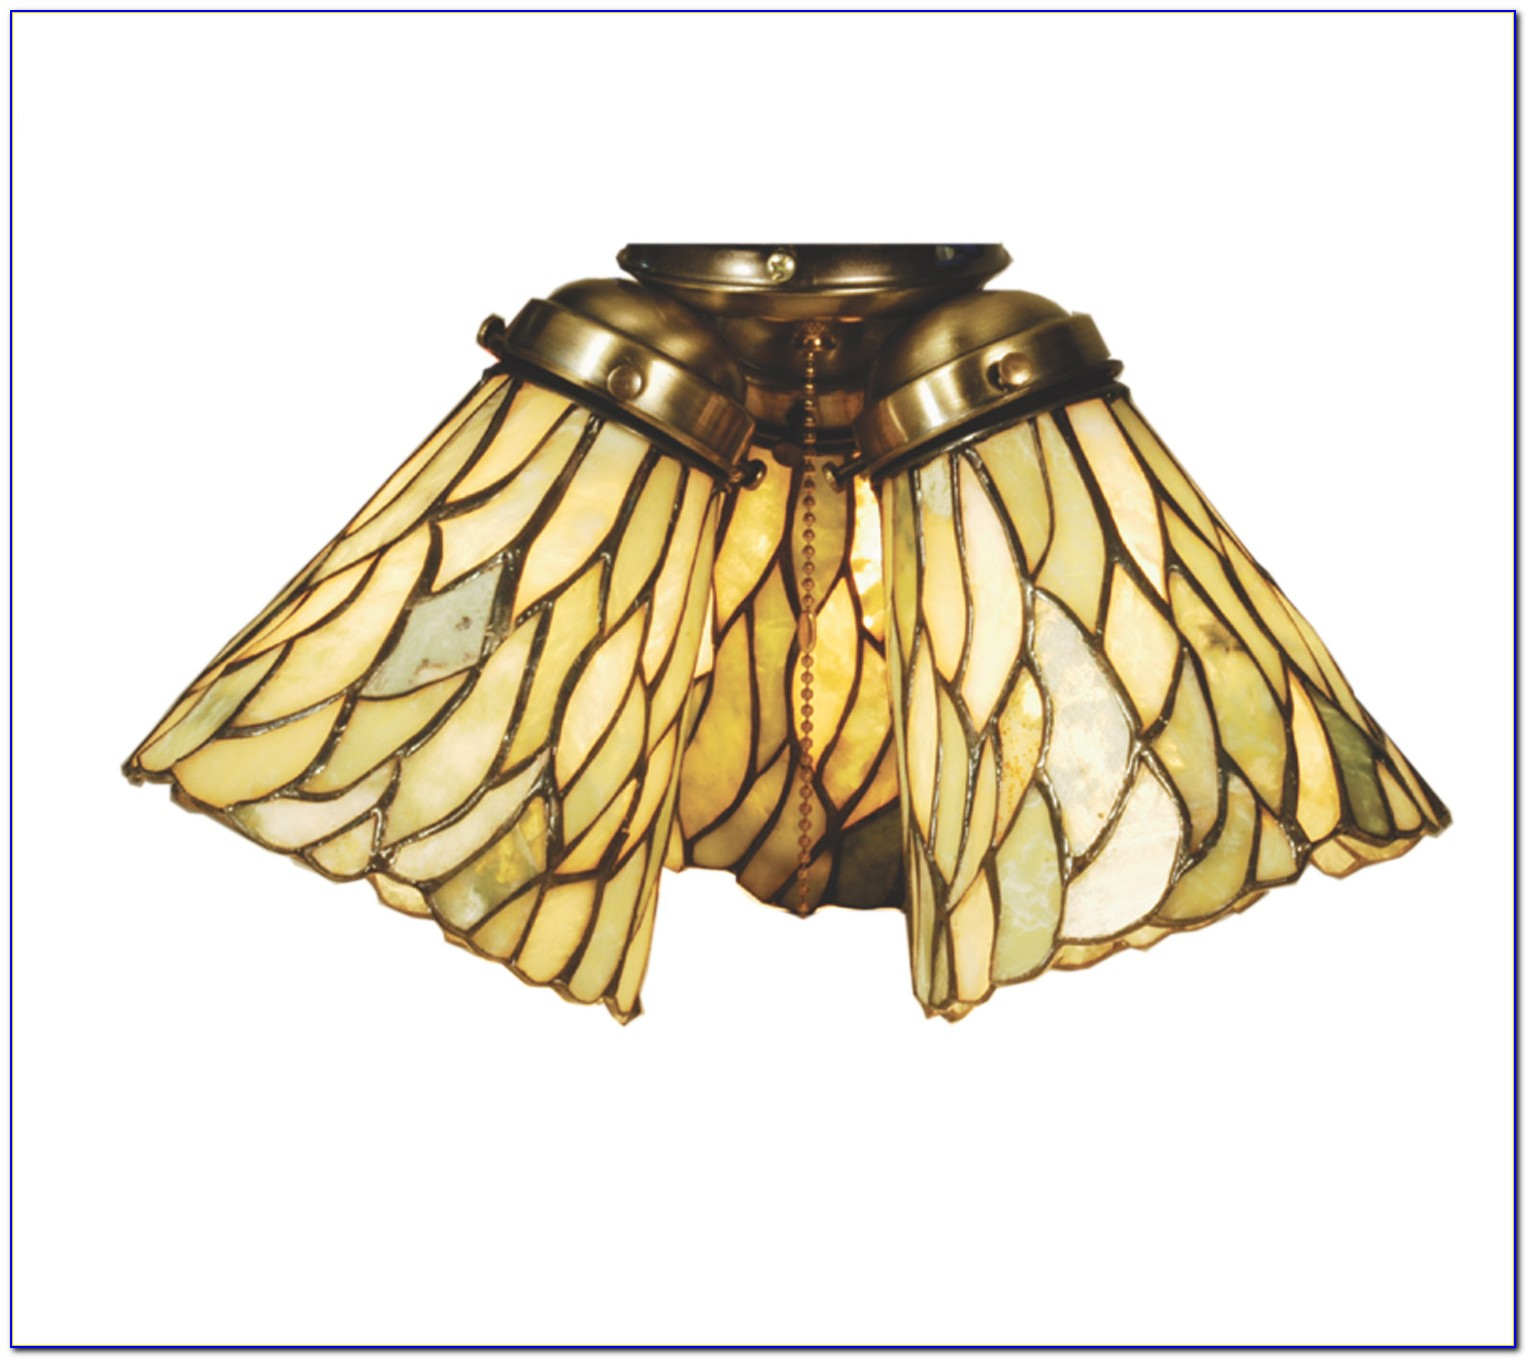 Tiffany Style Ceiling Fan Glass Shades